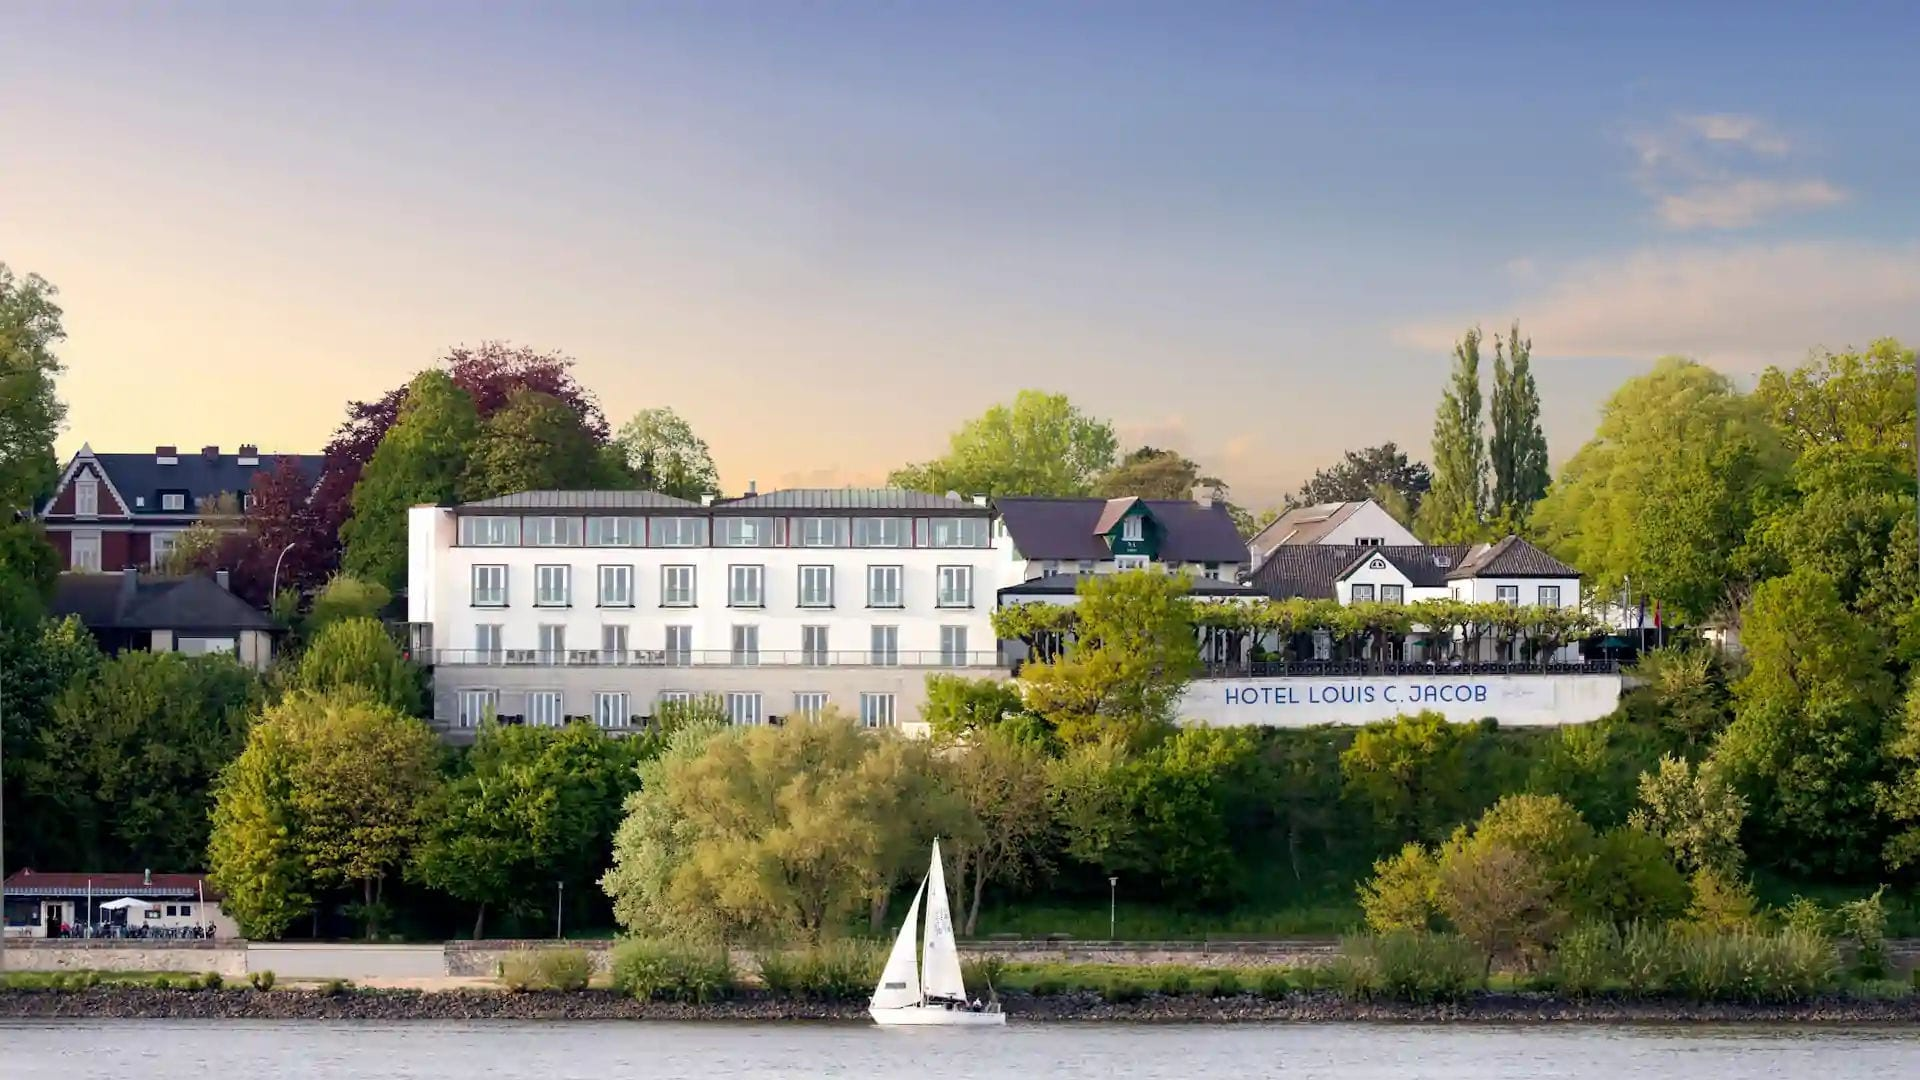 Hotel Louis C. Jacob an der Elbe